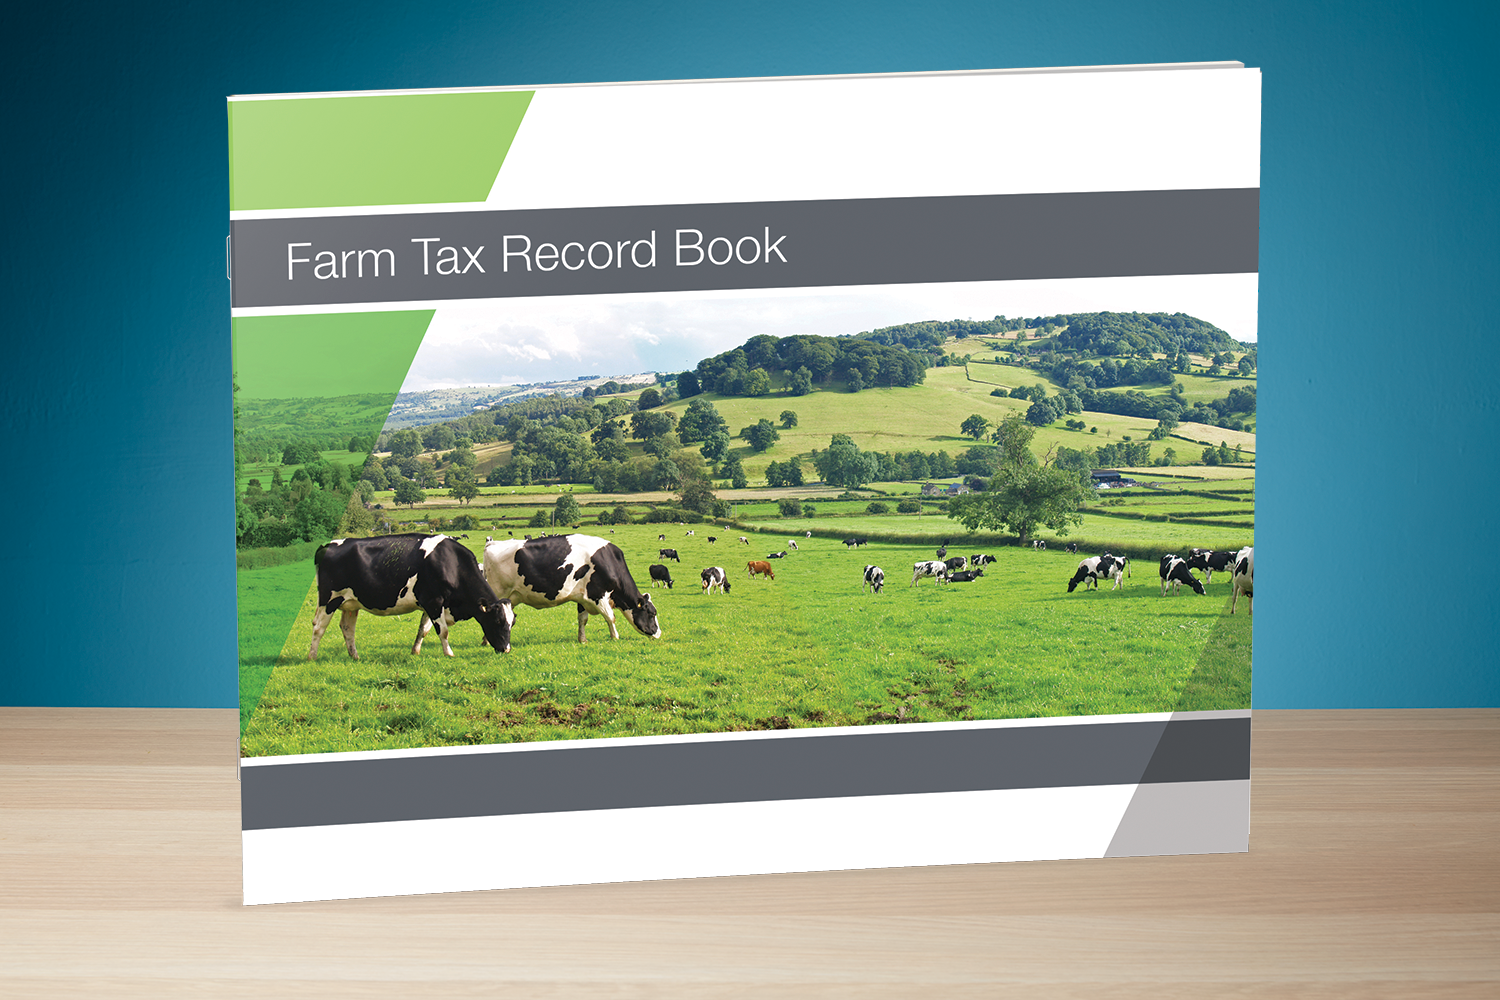 Farm Tax Record Book - #610A